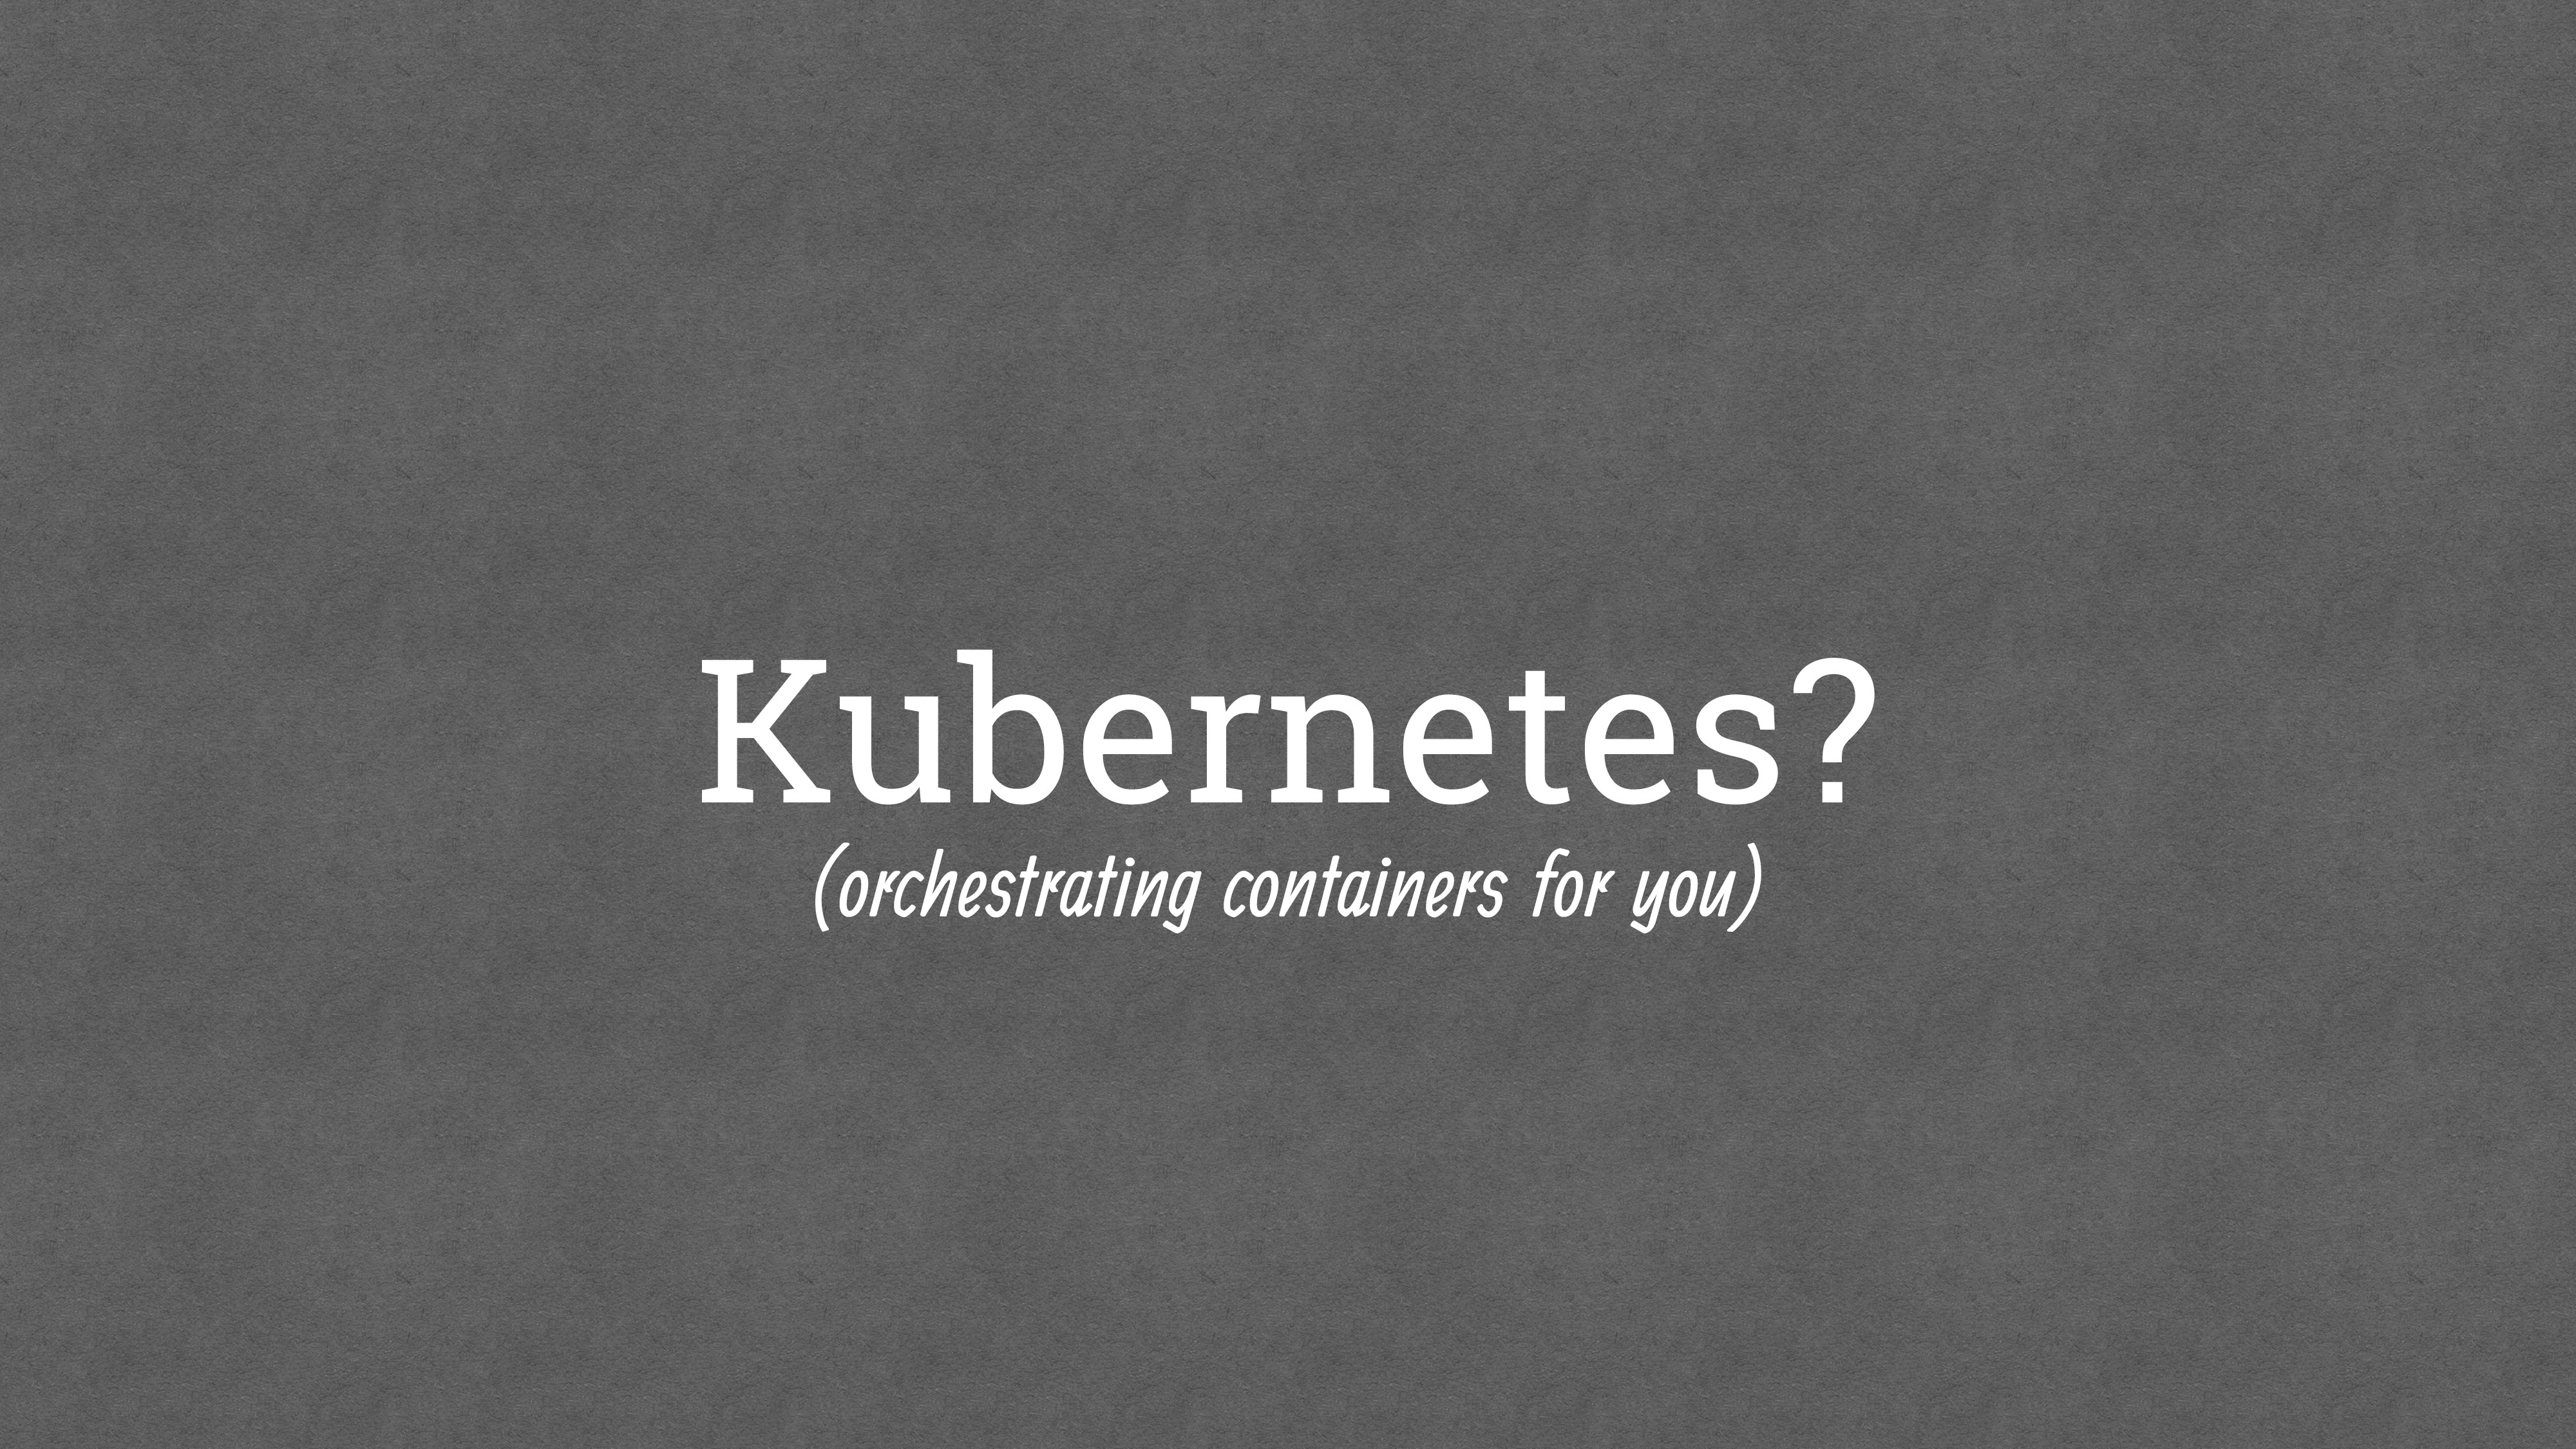 Kubernetes? (orchestrating containers for you)